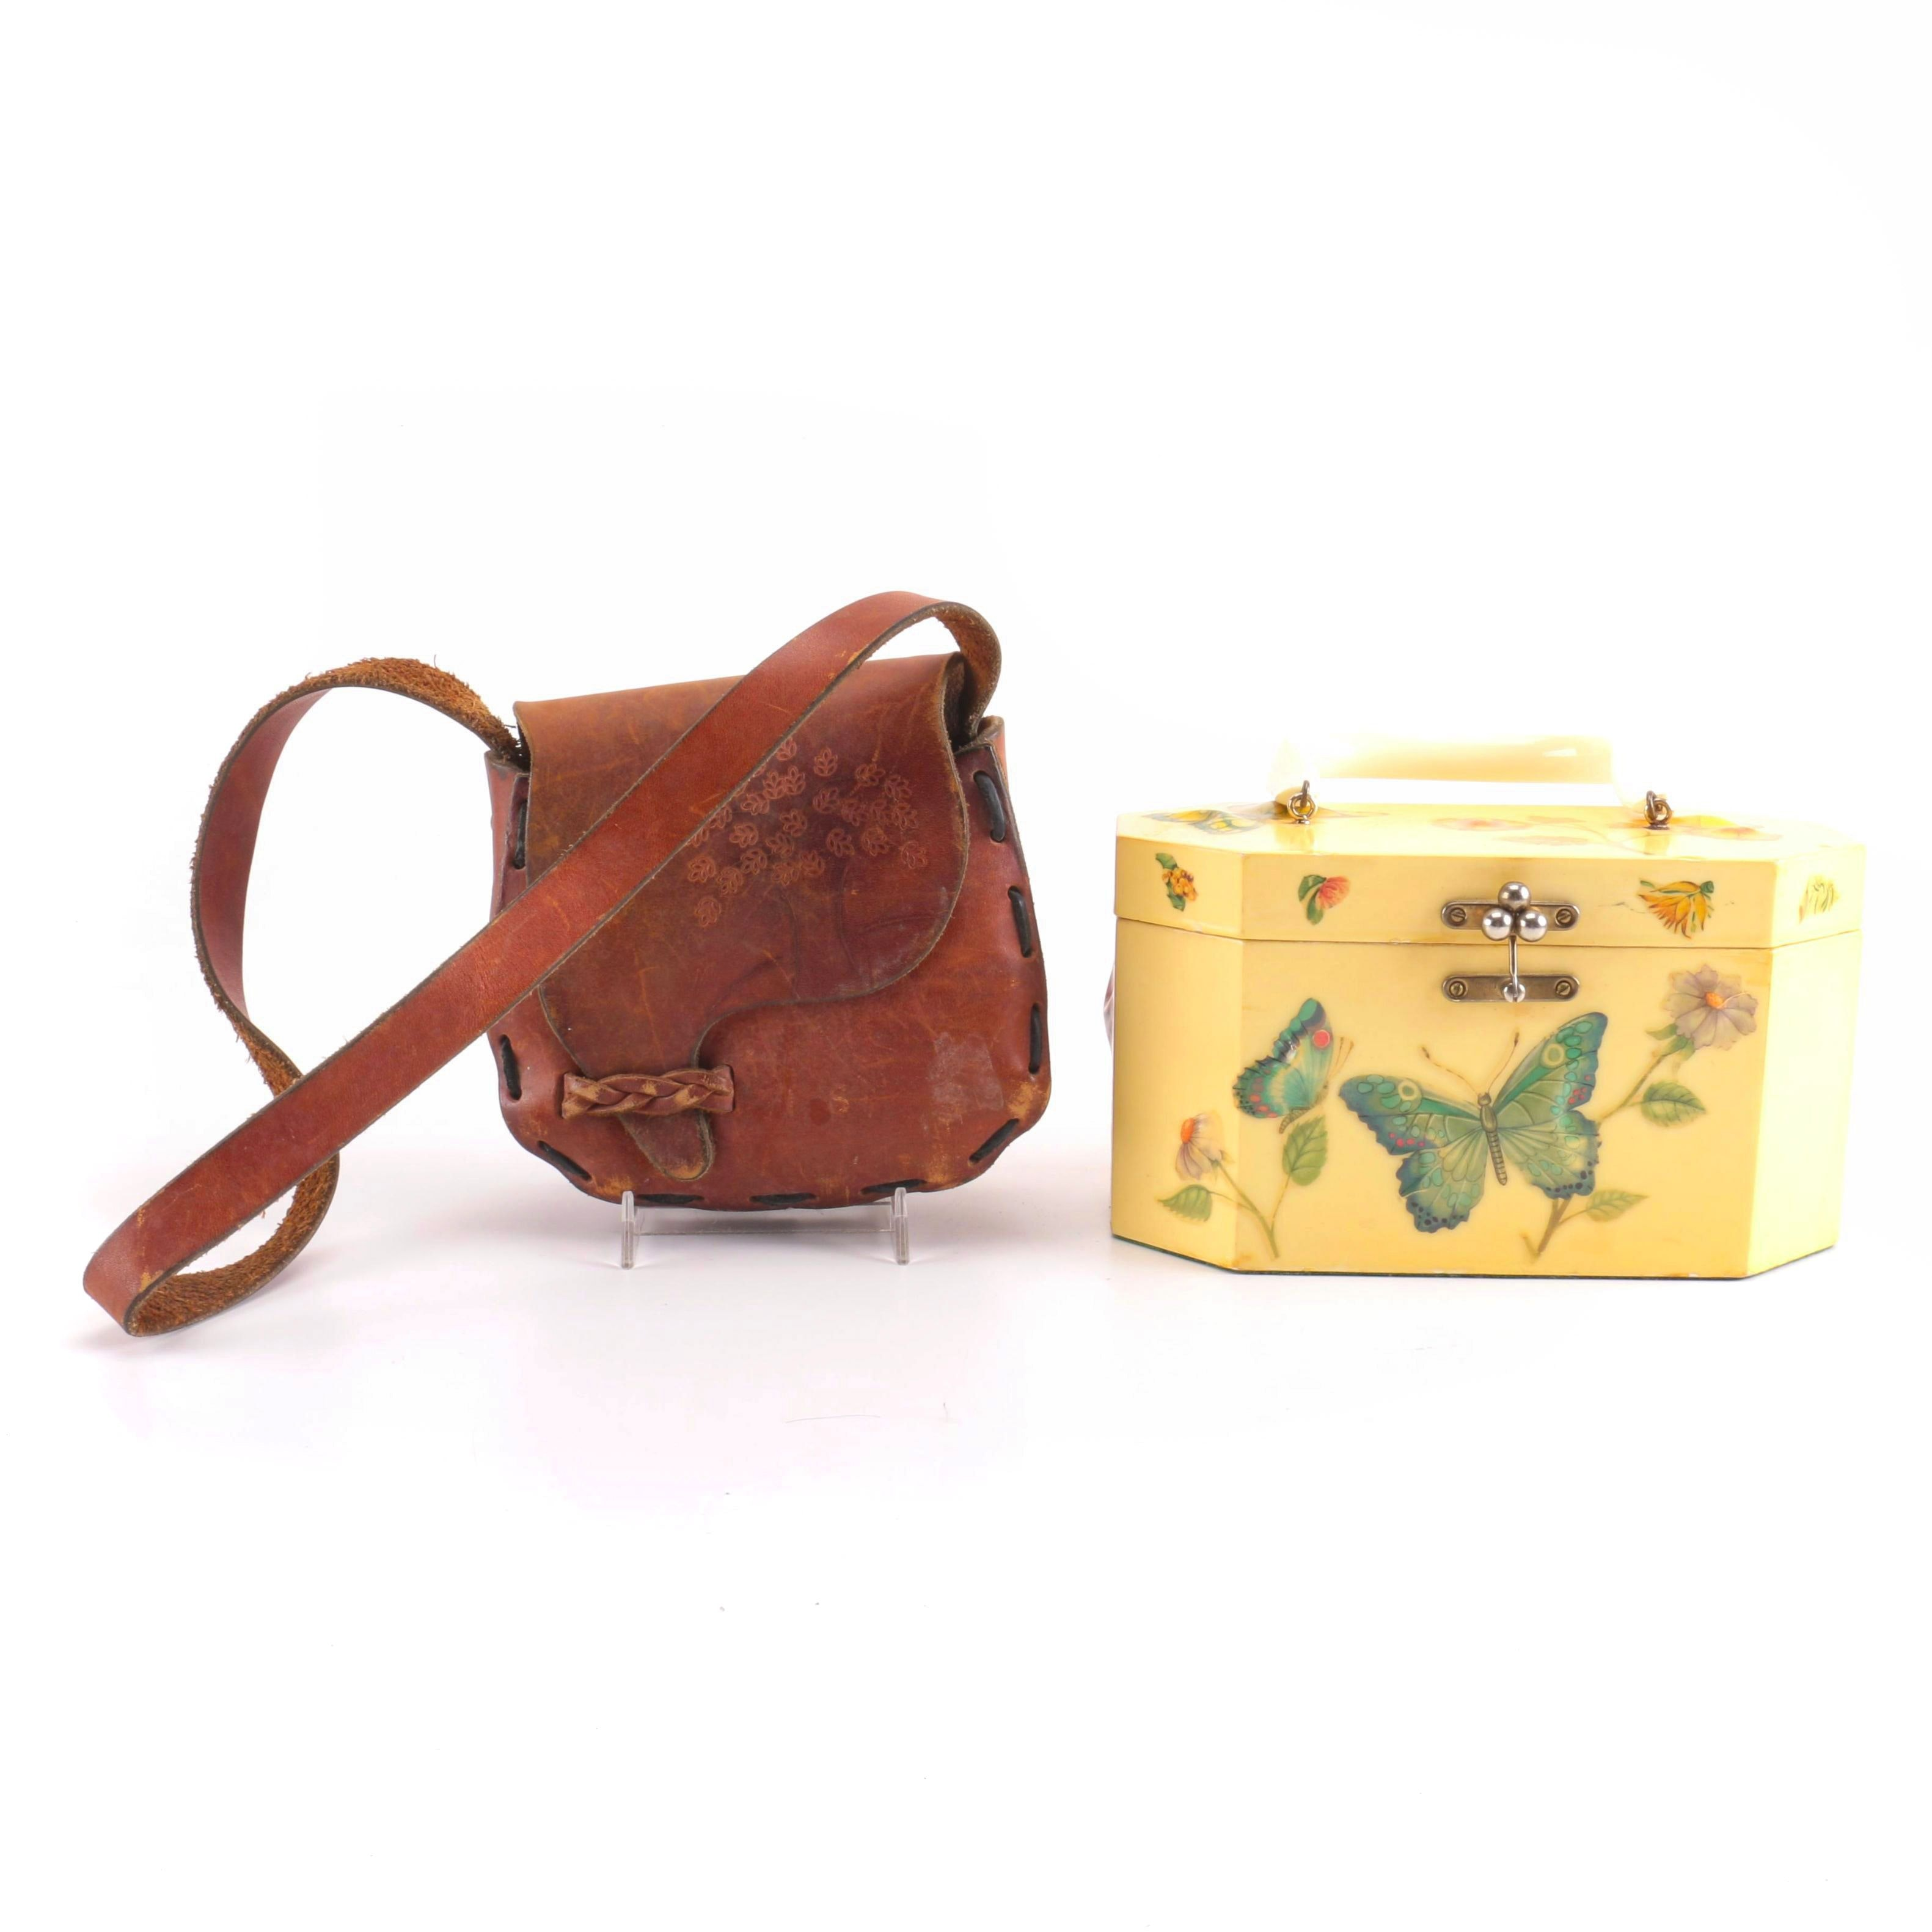 Vintage Leather Saddle Bag and Annie Laurie Decoupage Box Purse